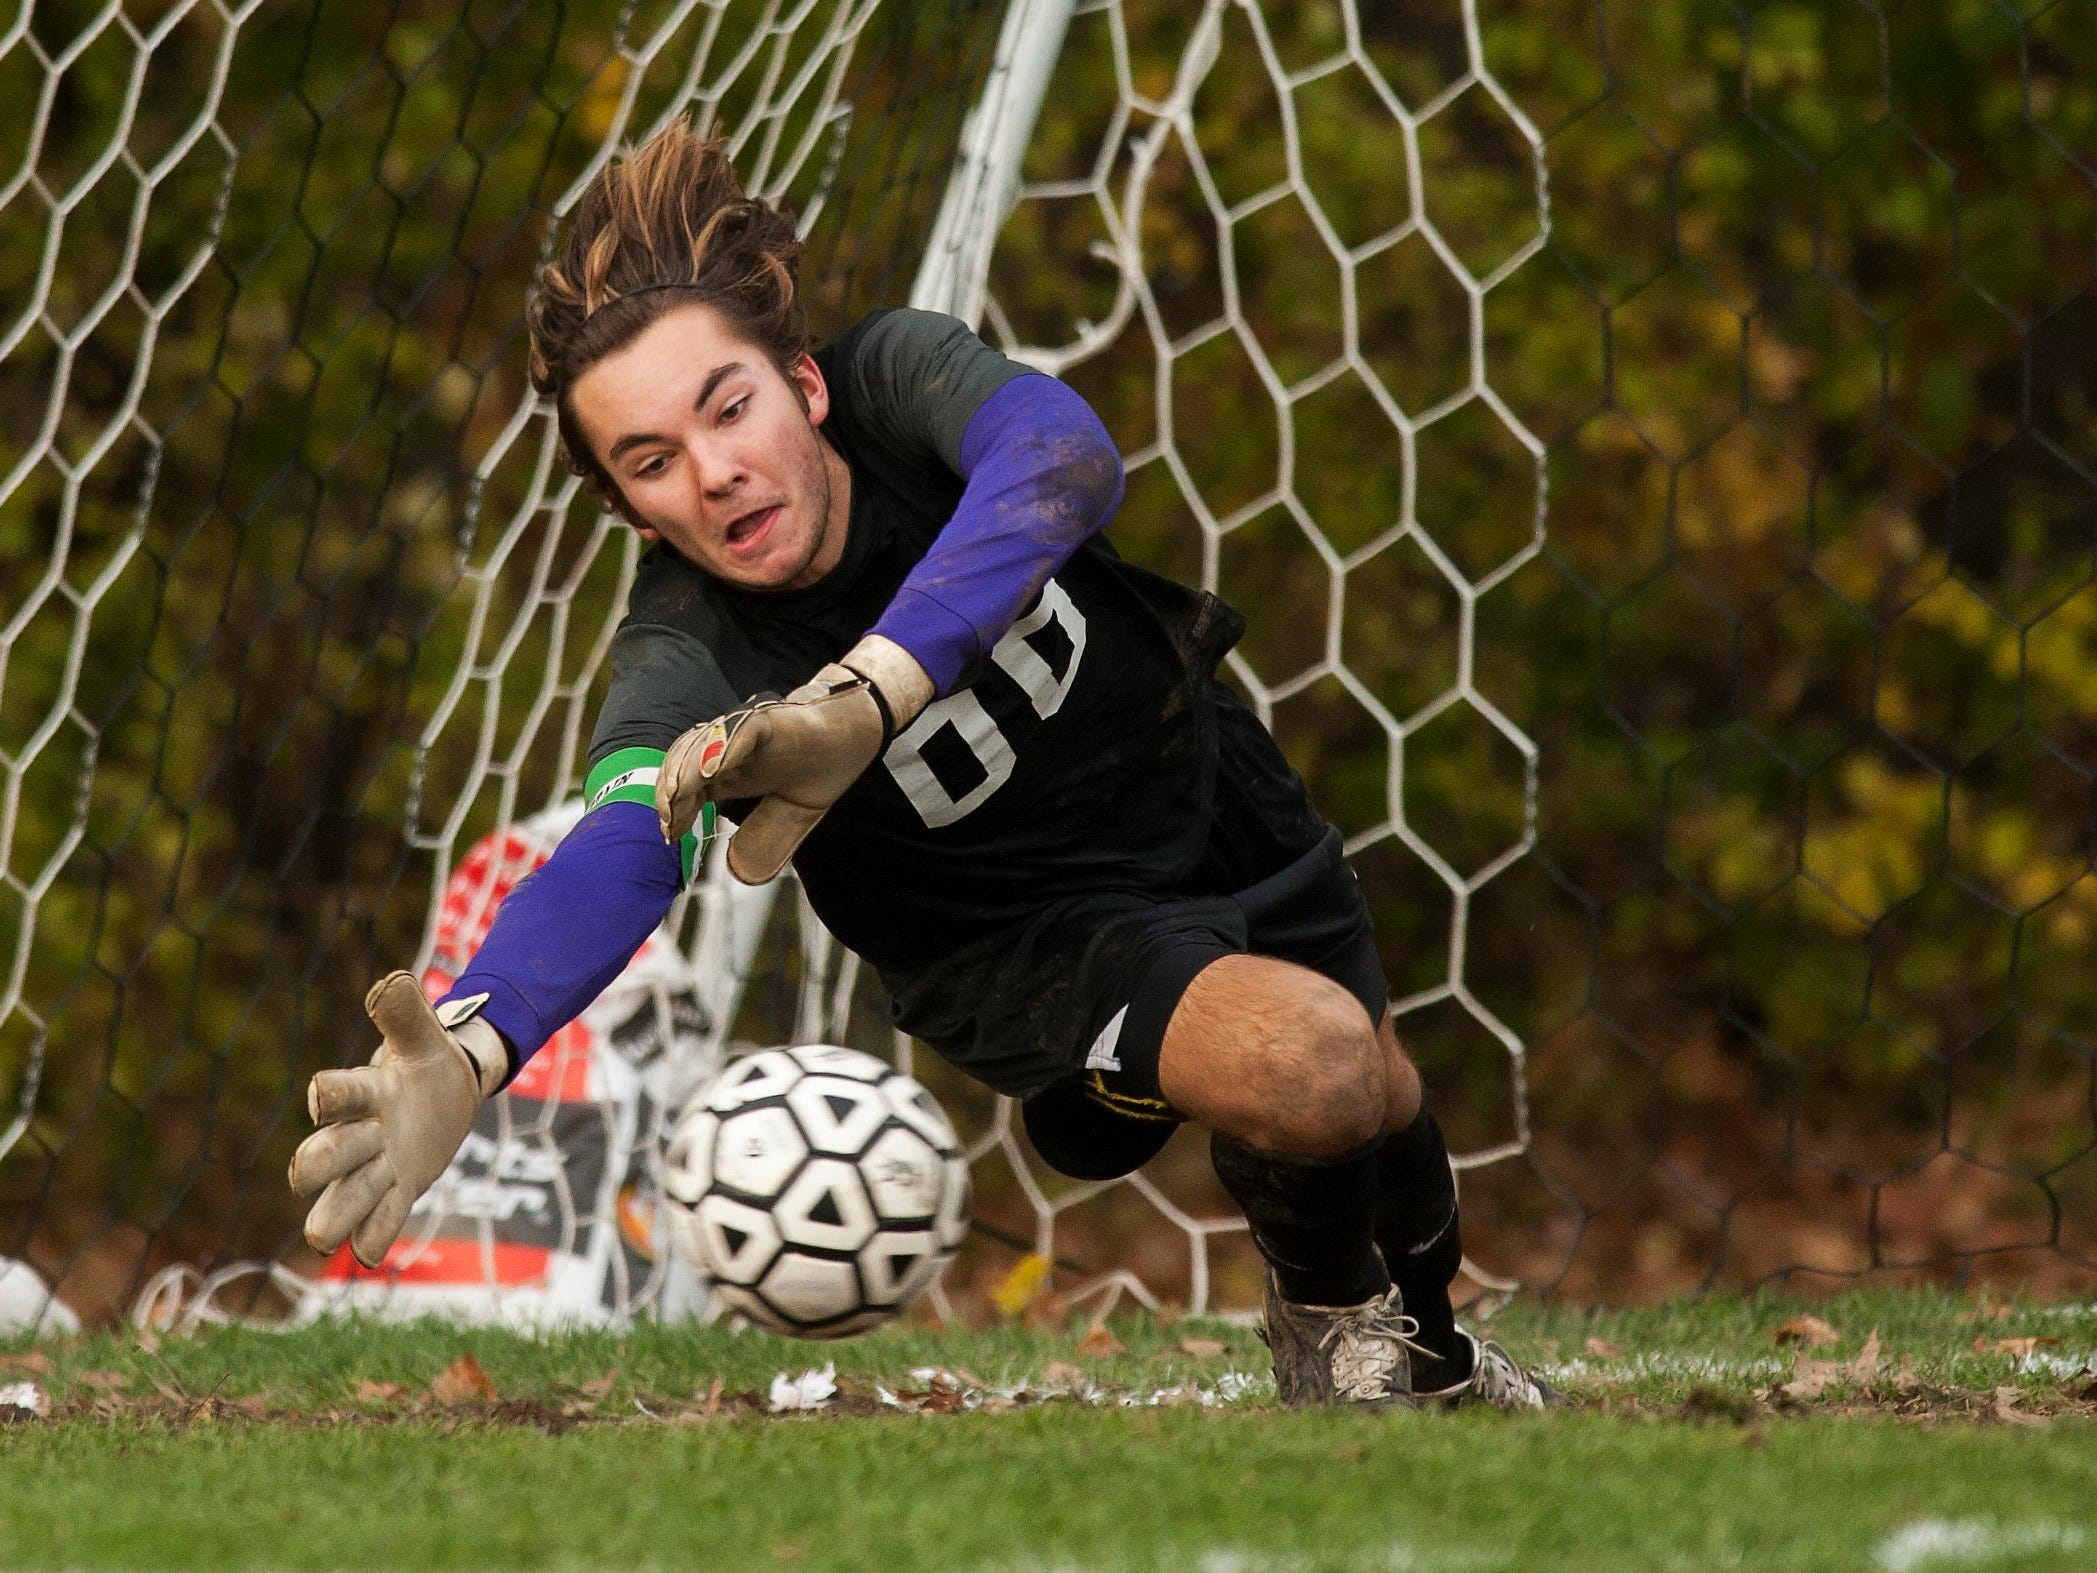 Rice goalie Leland Gazo (00) tries to makes a save on a penalty kick during the boys semi final soccer game between Green Mountain Valley and Rice at Rice high school on Tuesday afternoon October 28, 2014 in South Burlington, Vermont. (BRIAN JENKINS, for the Free Press)